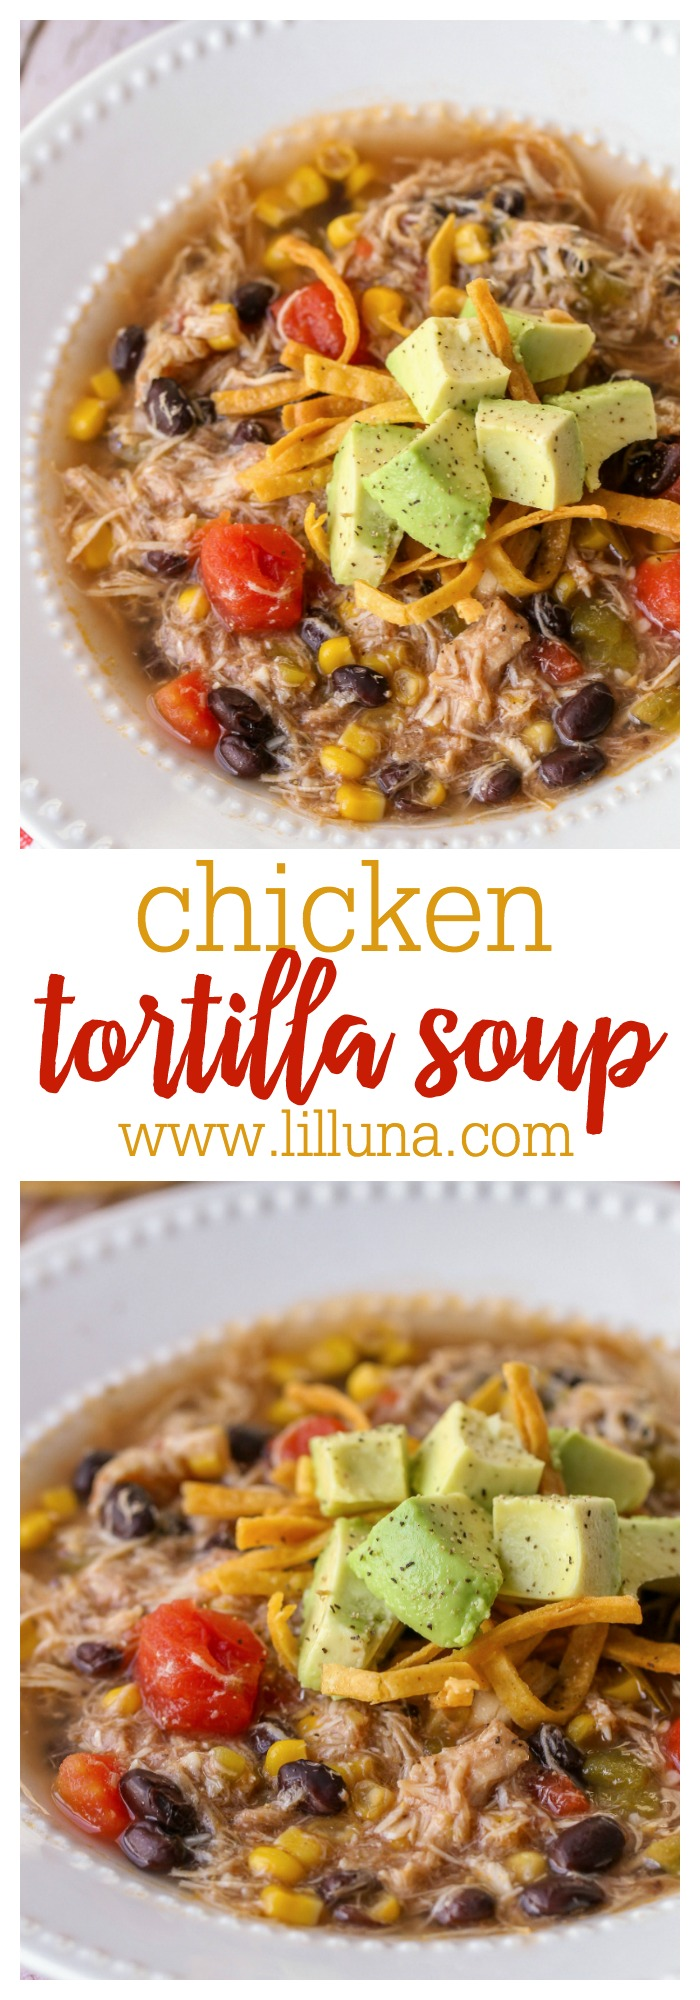 Chicken Tortilla Soup #chickentortillasoup